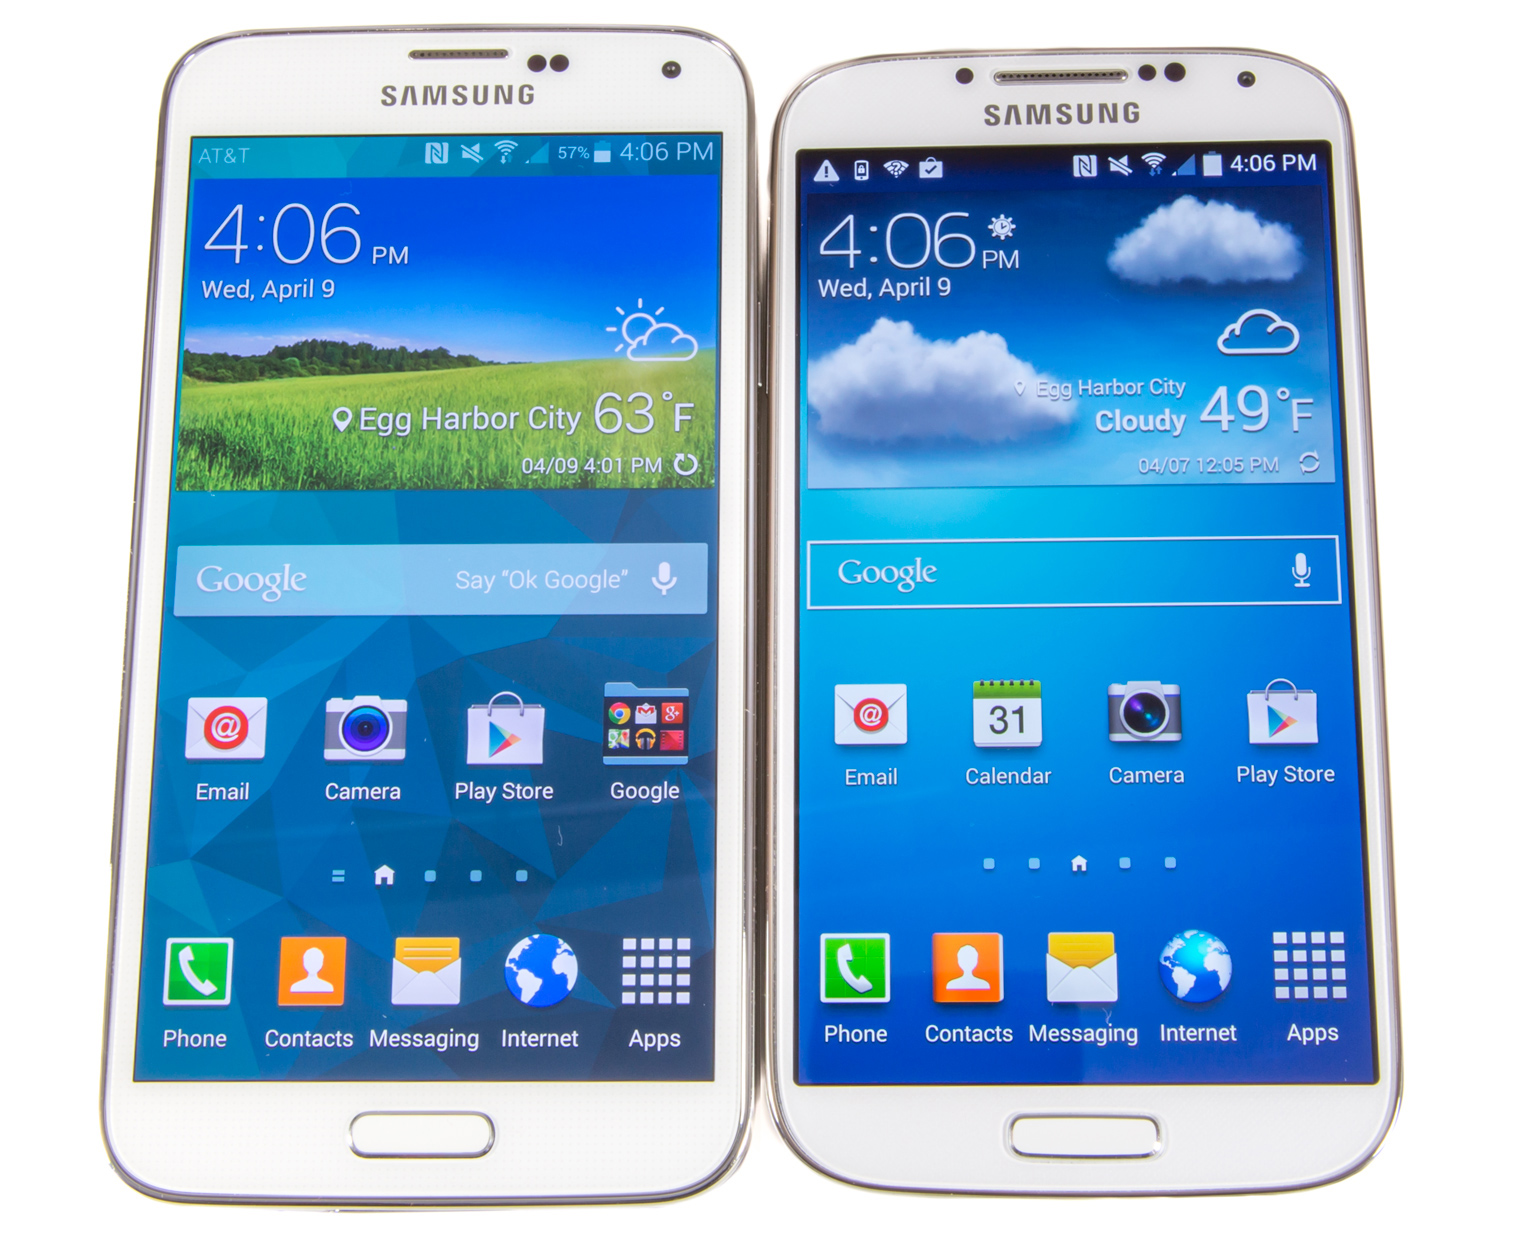 The Galaxy S5 (left) versus the Galaxy S4 (right). The S5 bezels need to go on a diet.